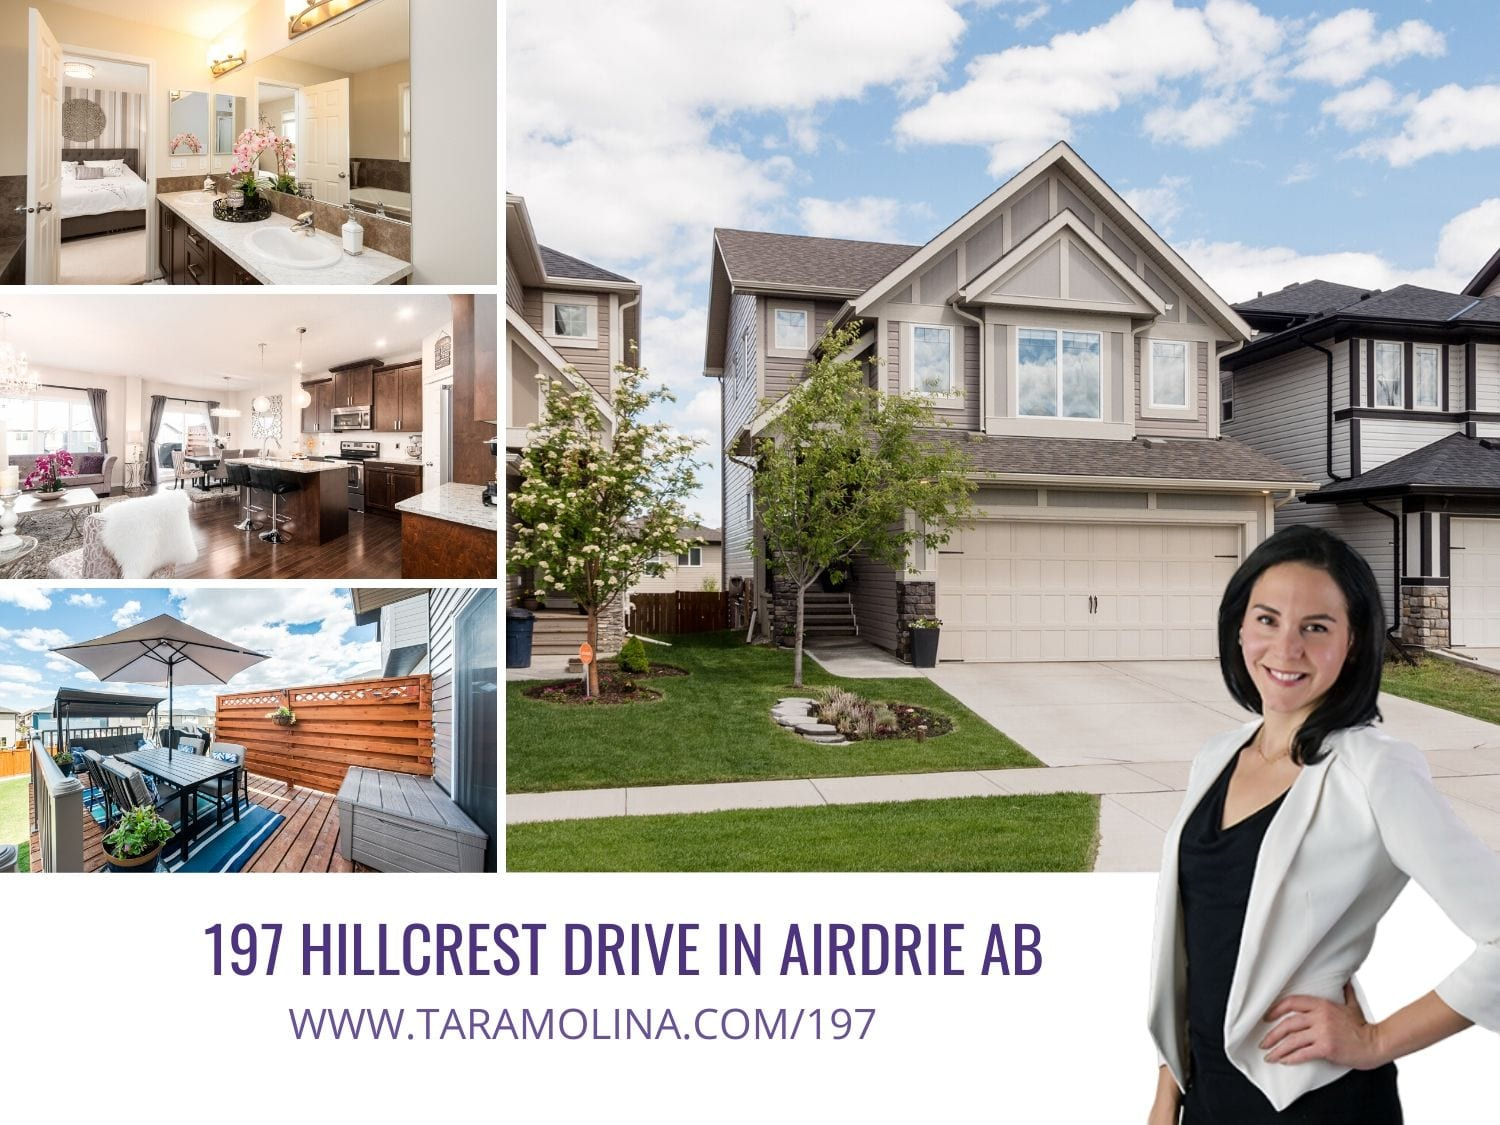 197 Hillcrest Drive in Airdrie